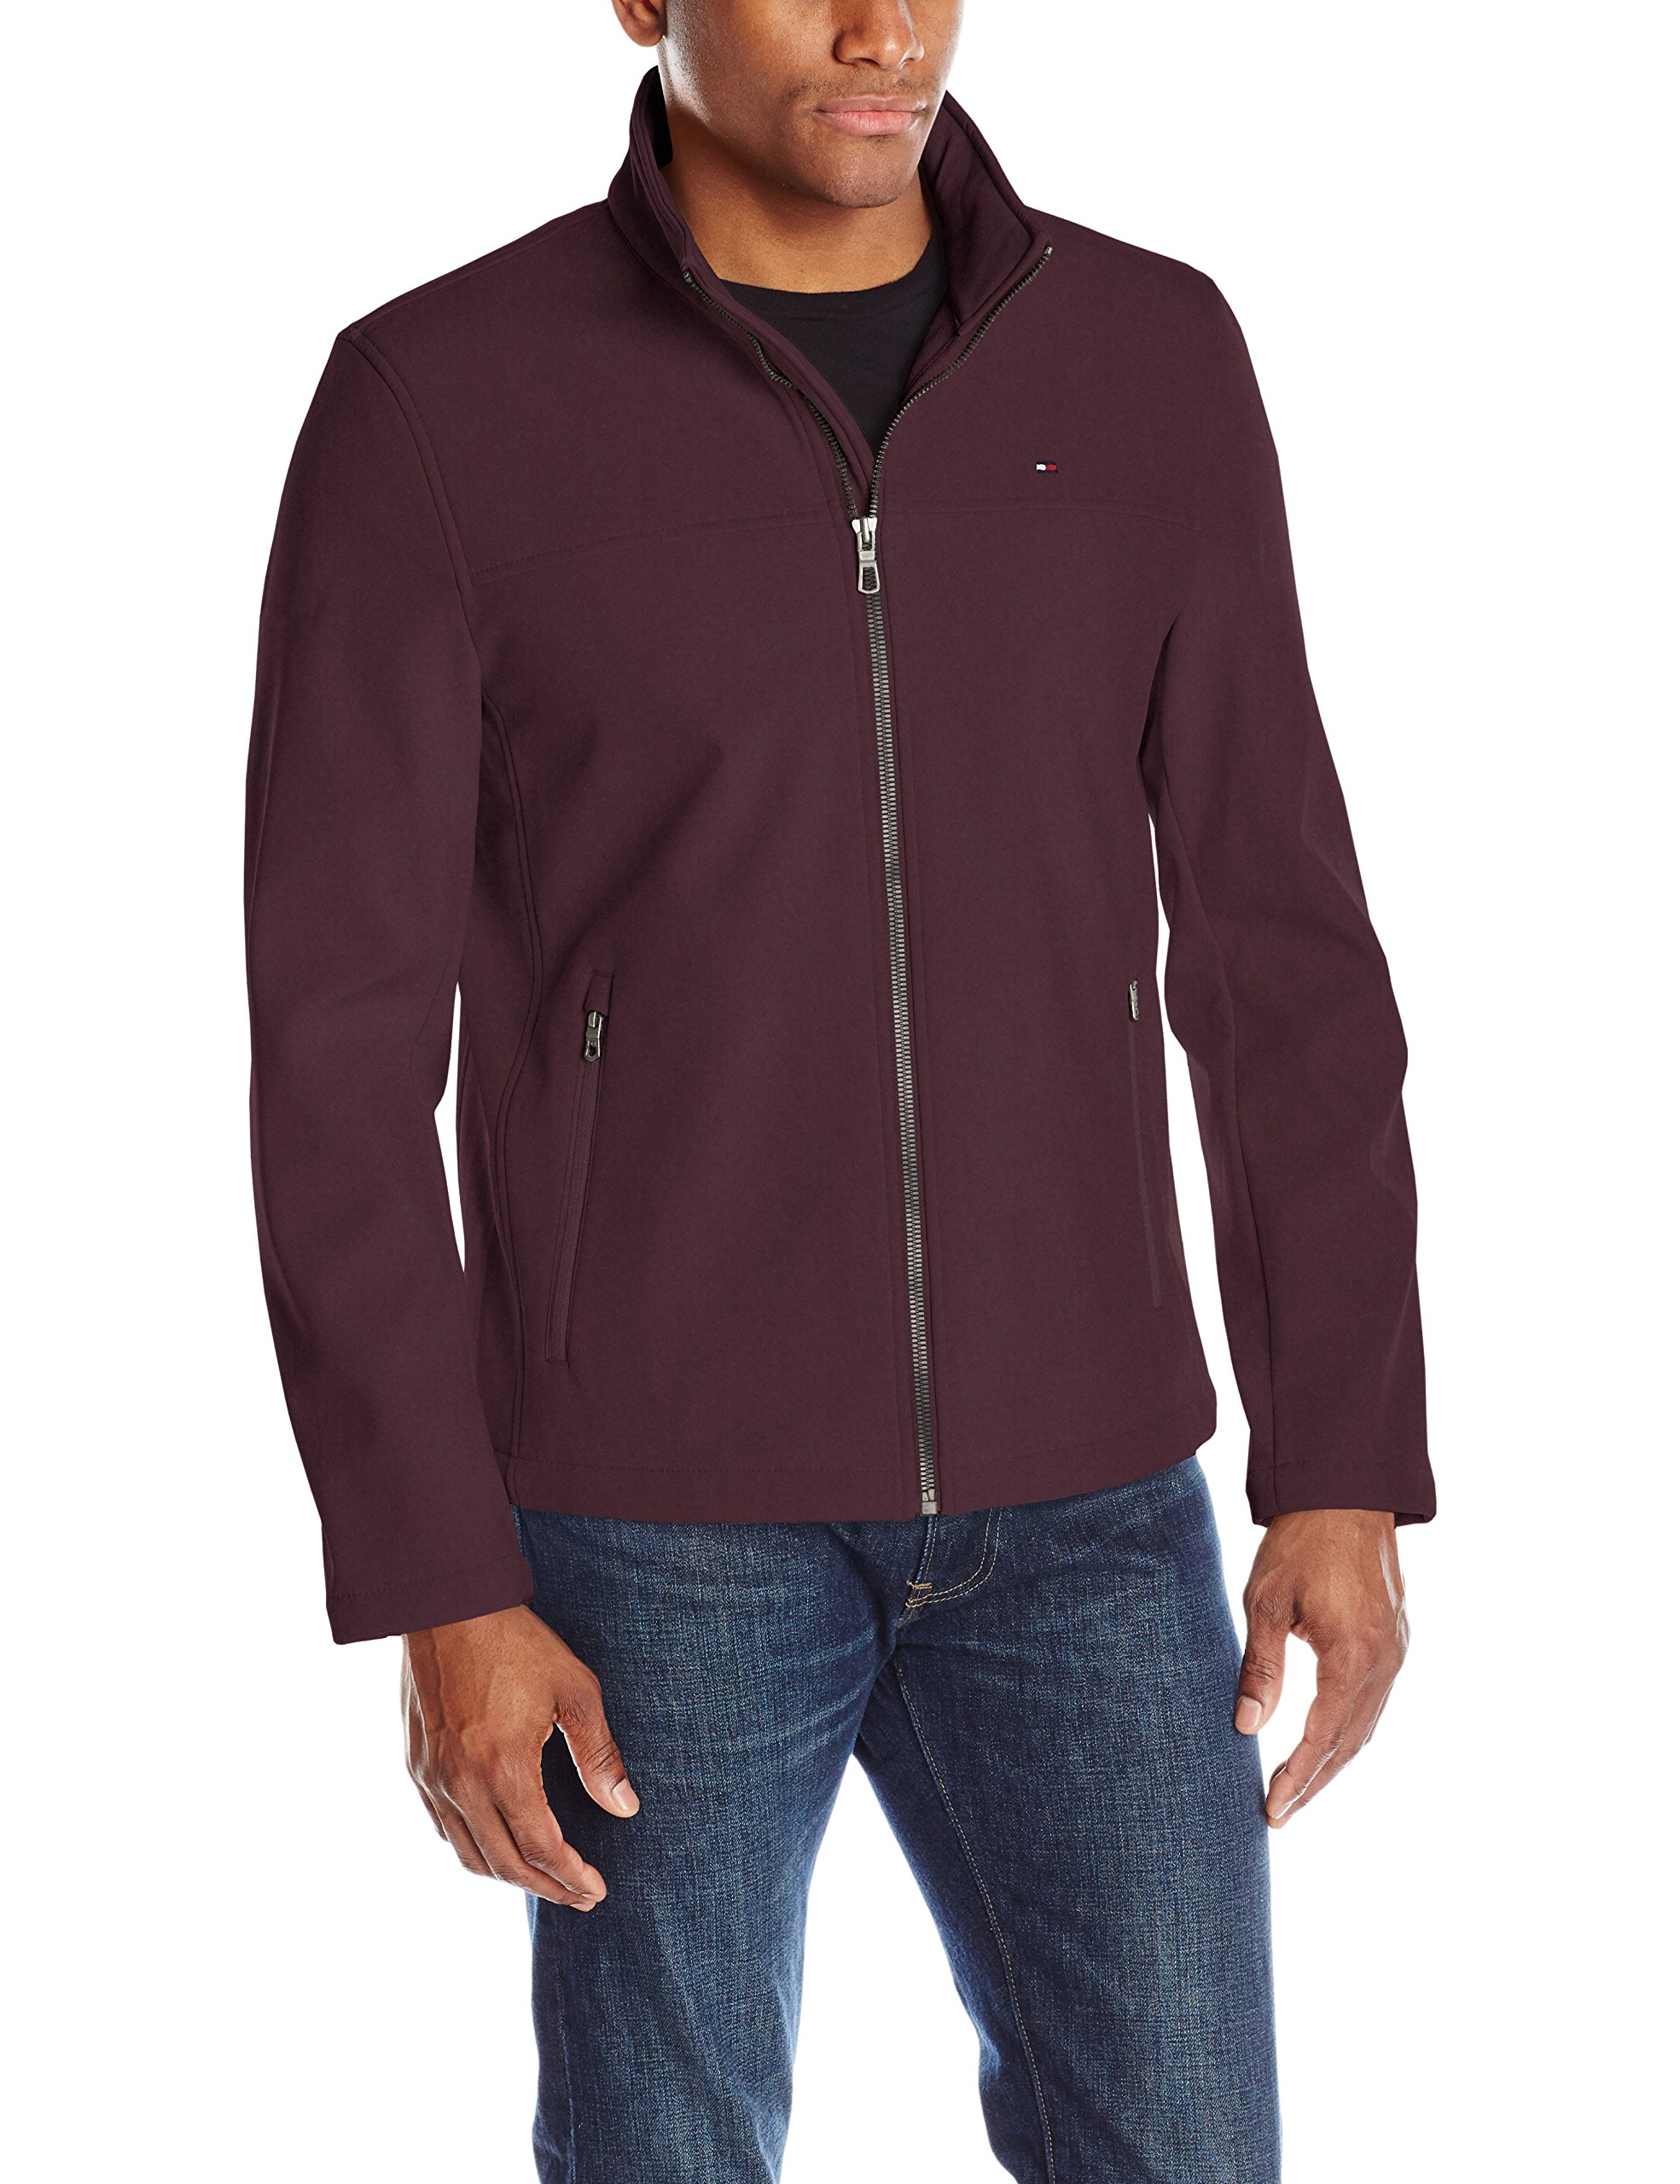 Tommy Hilfiger Men's Classic Soft Shell Jacket, Wine, Large by Tommy Hilfiger